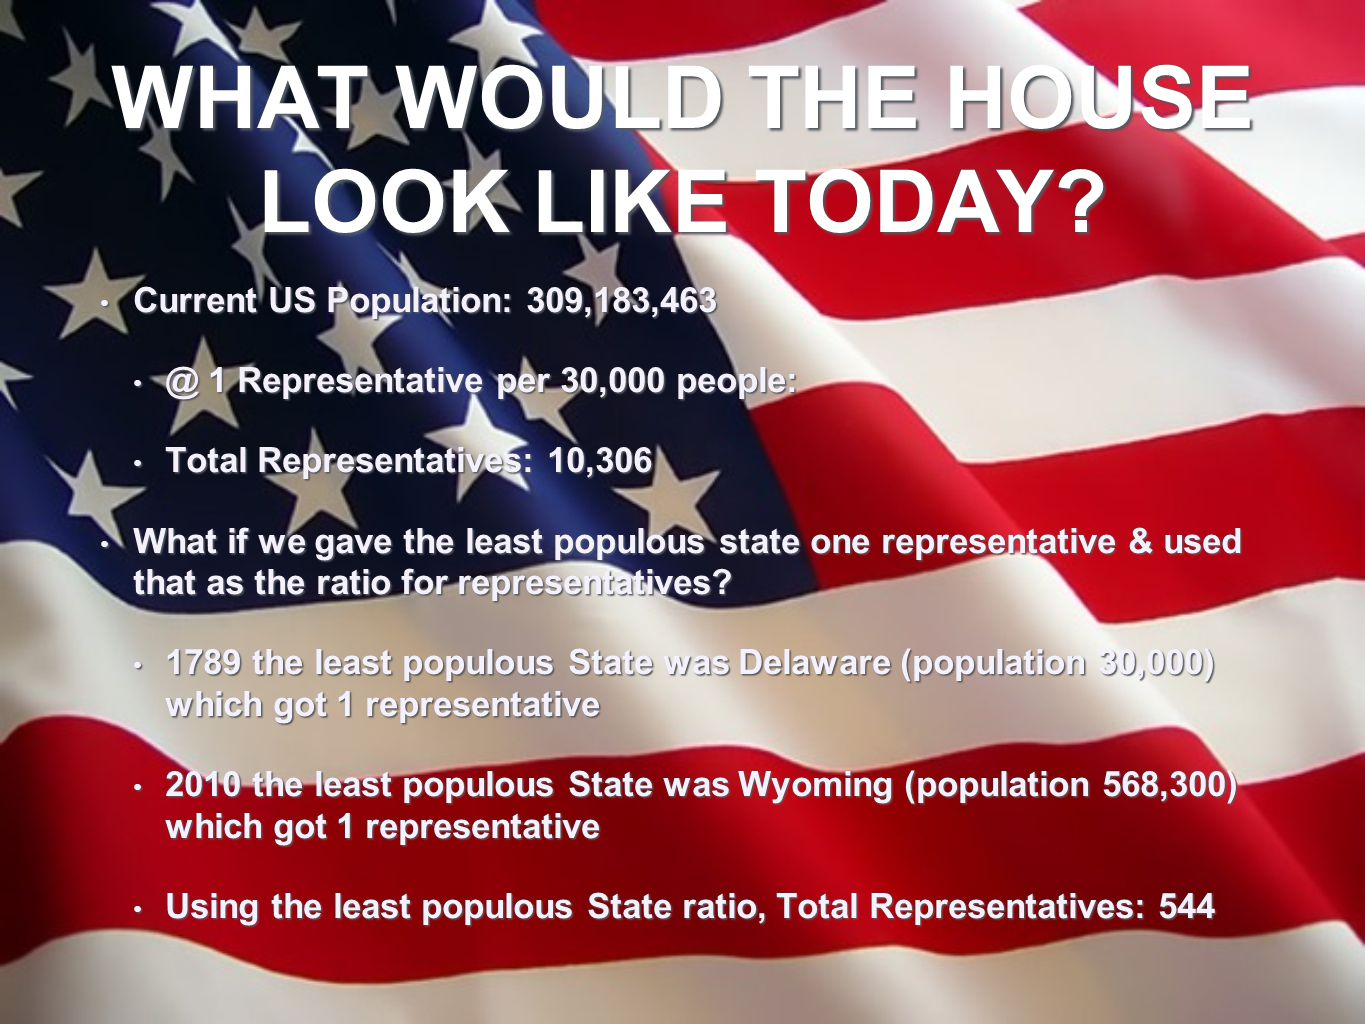 WHAT WOULD THE HOUSE LOOK LIKE TODAY? Current US Population: 309,183,463 Current US Population: 309,183,463 @ 1 Representative per 30,000 people: @ 1